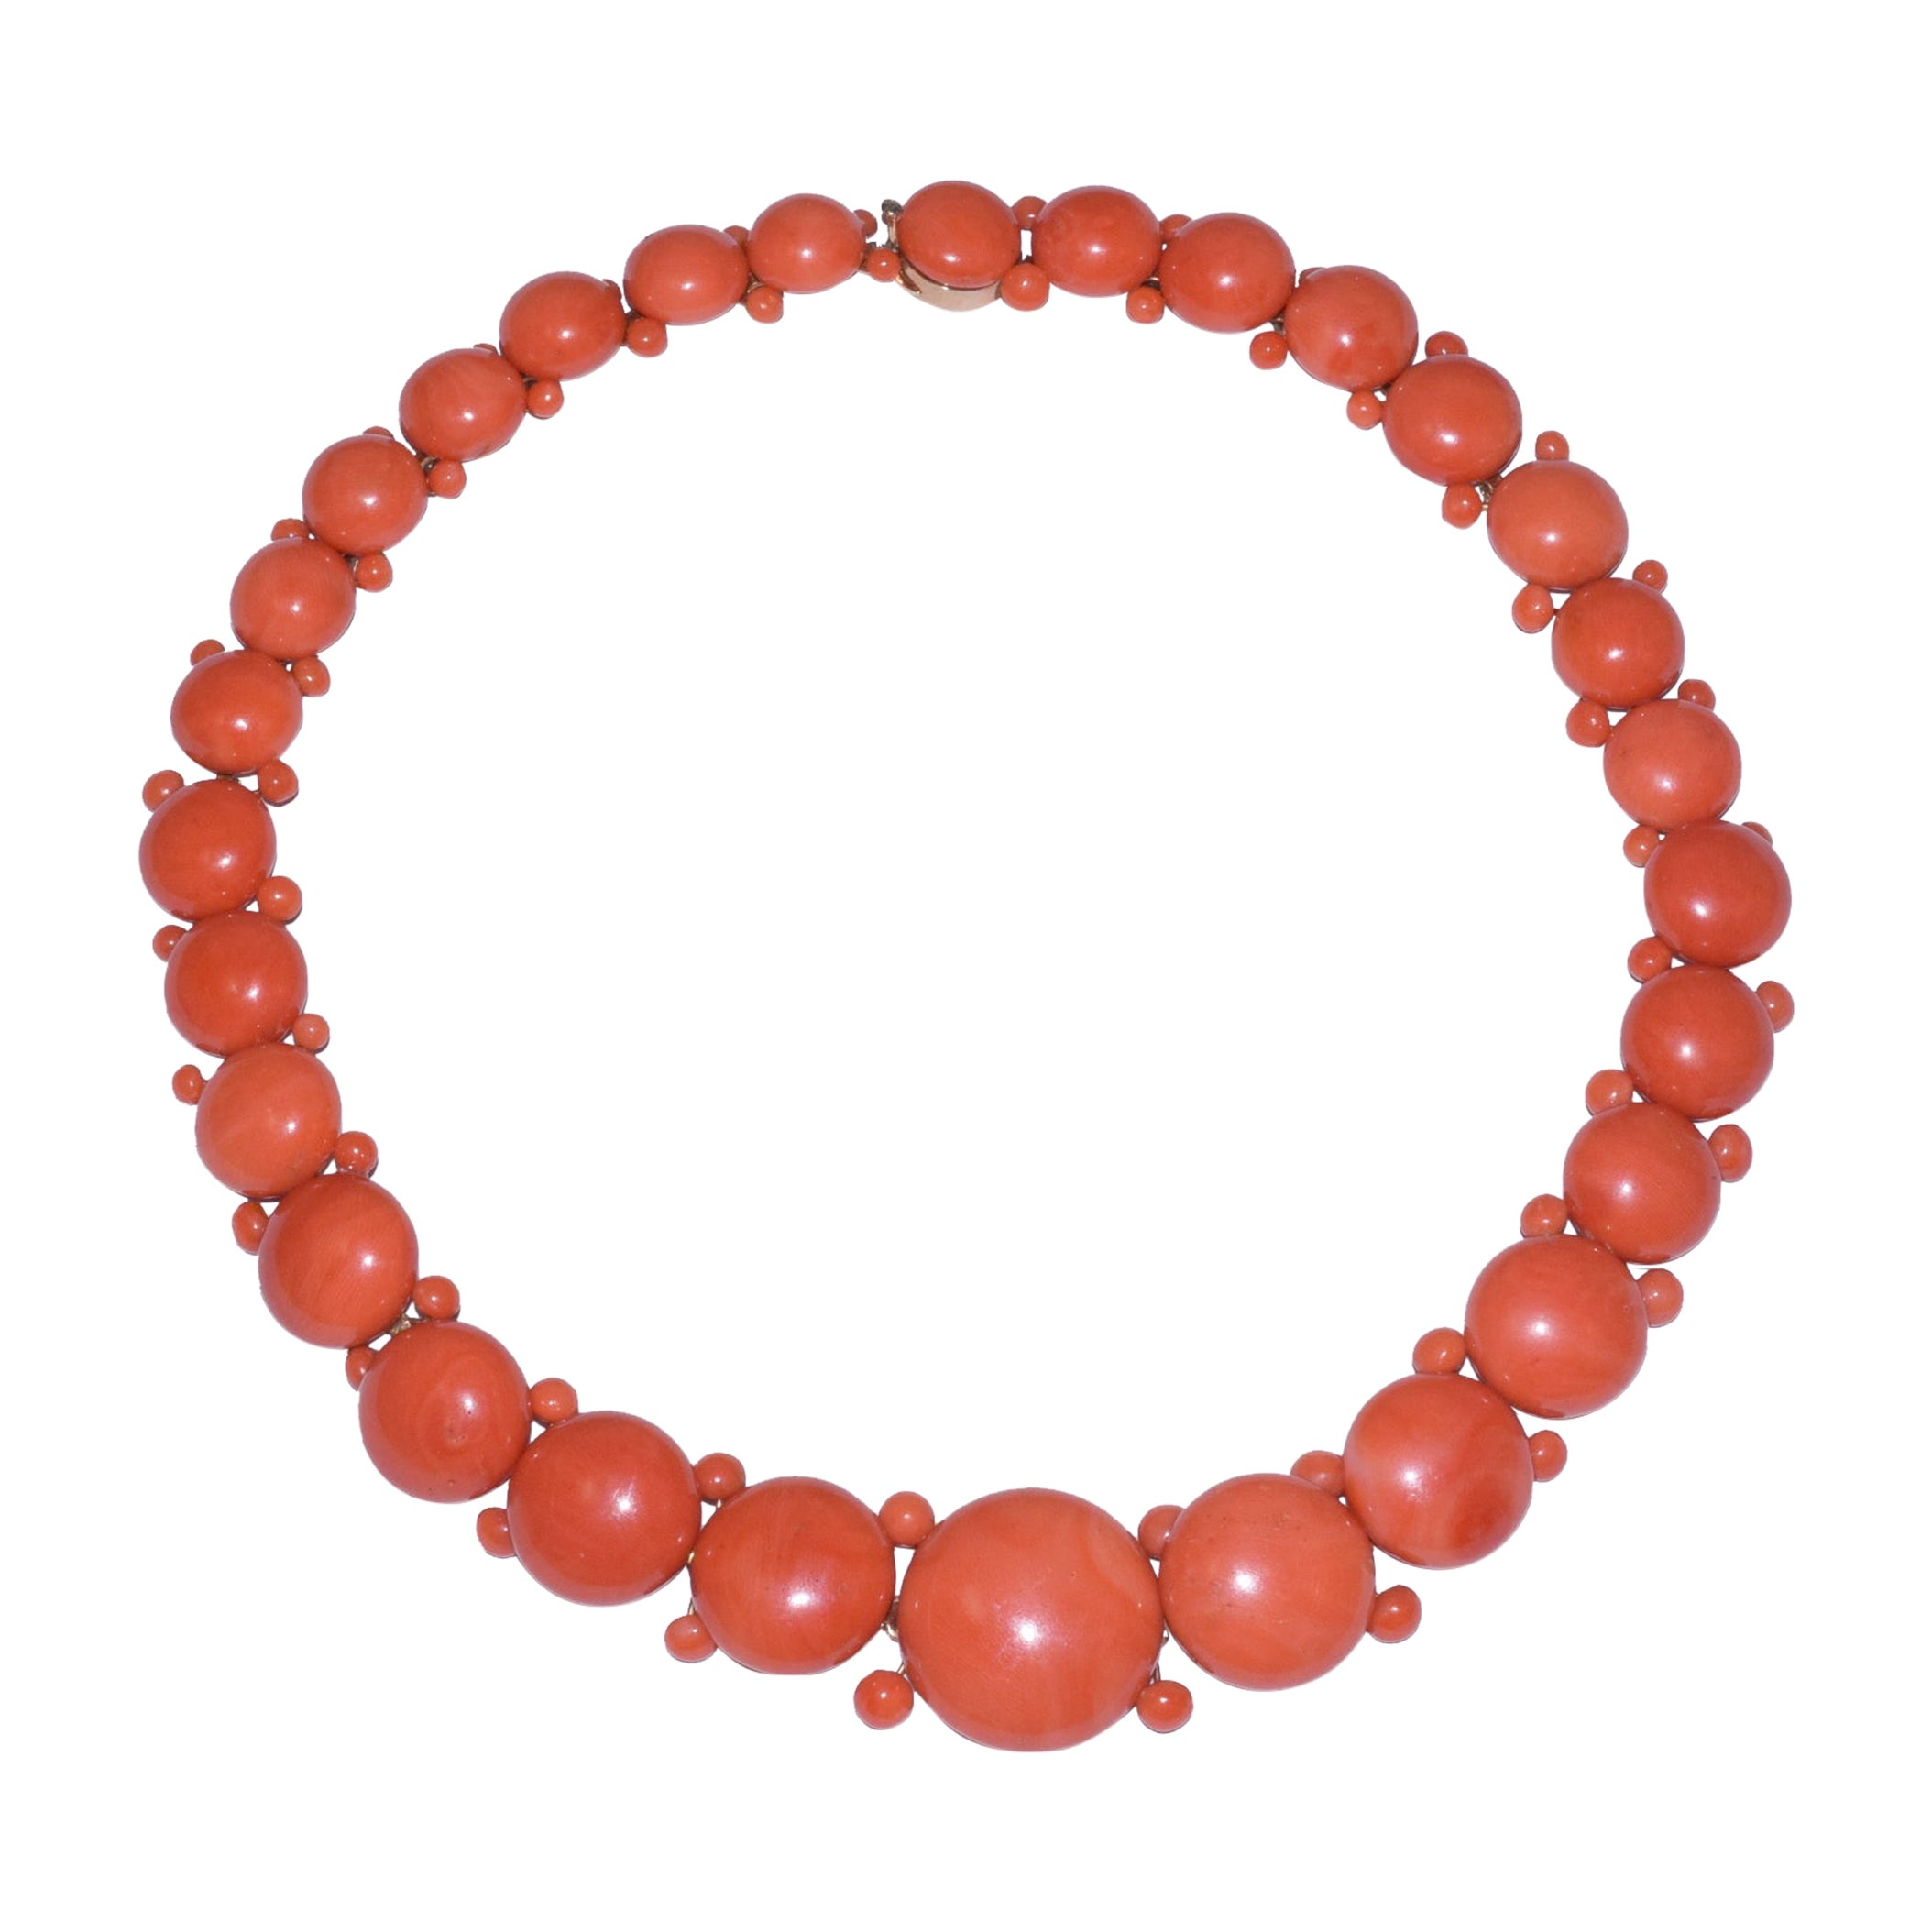 Antique Coral Button Riviere Necklace, circa 1850s